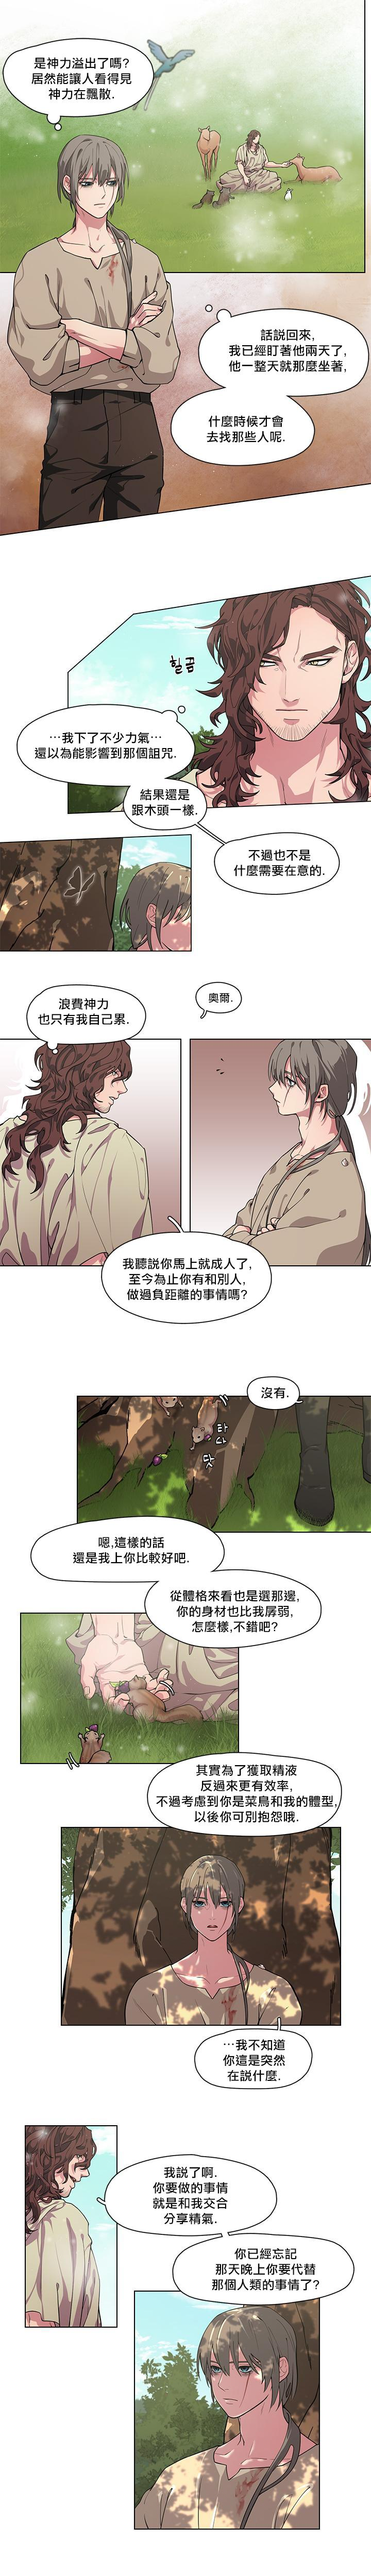 The Warrior and the Deity   勇者与山神 Ch. 2-6+加笔1+加笔2 7